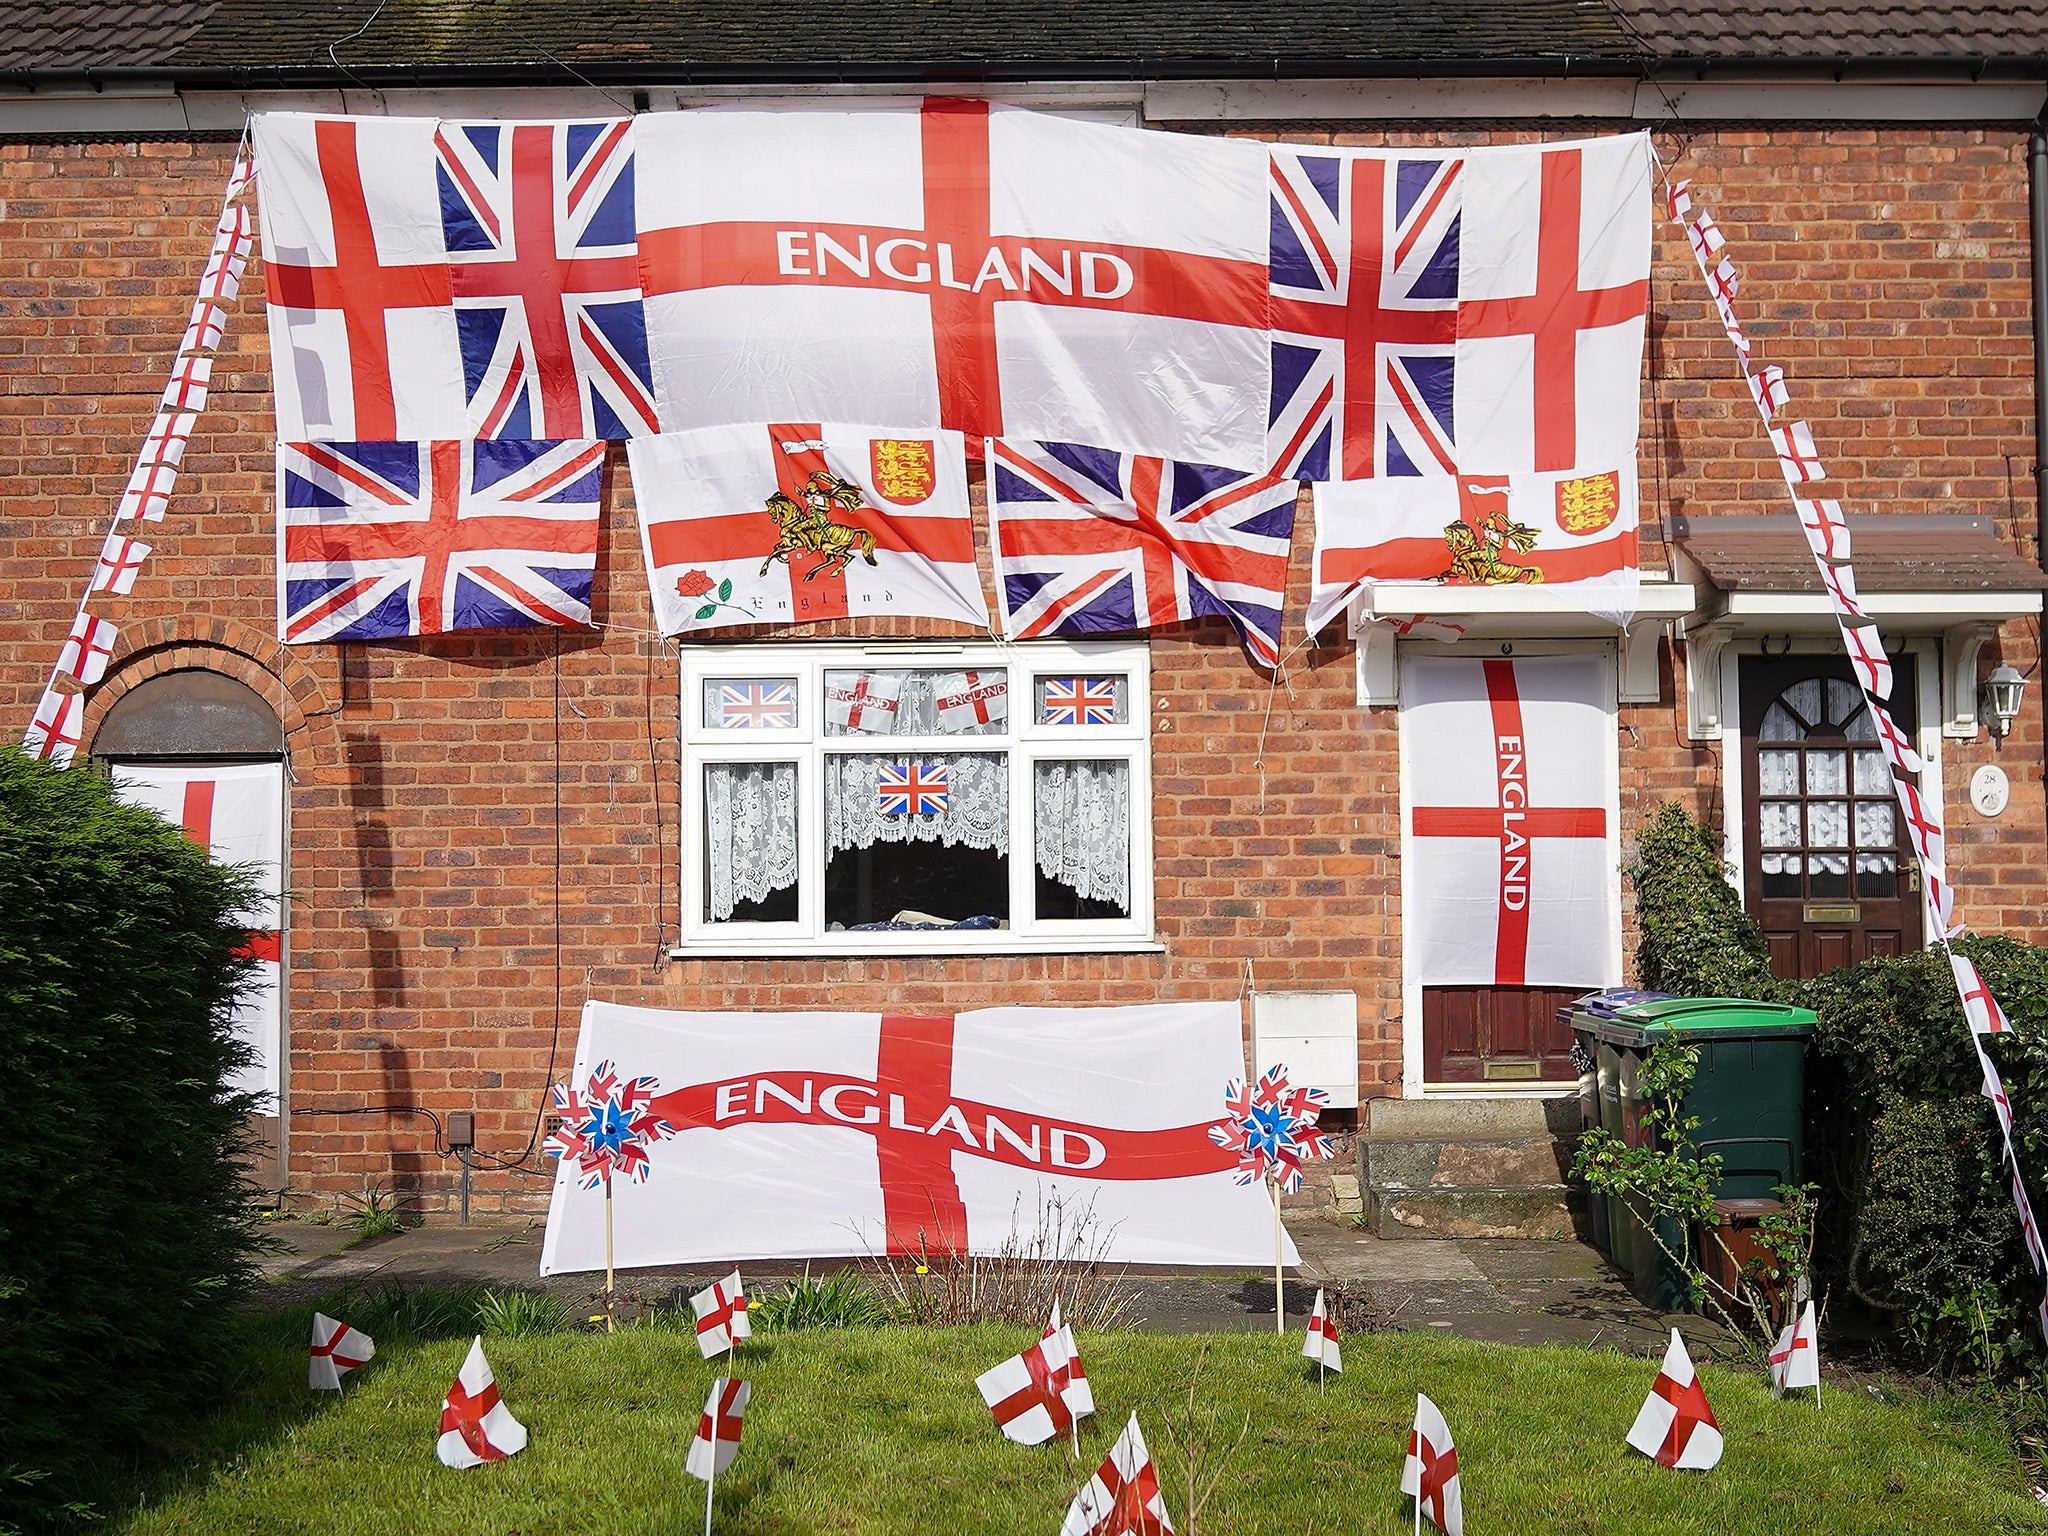 Is flying a St George's flag an act of patriotism or a symbol of all